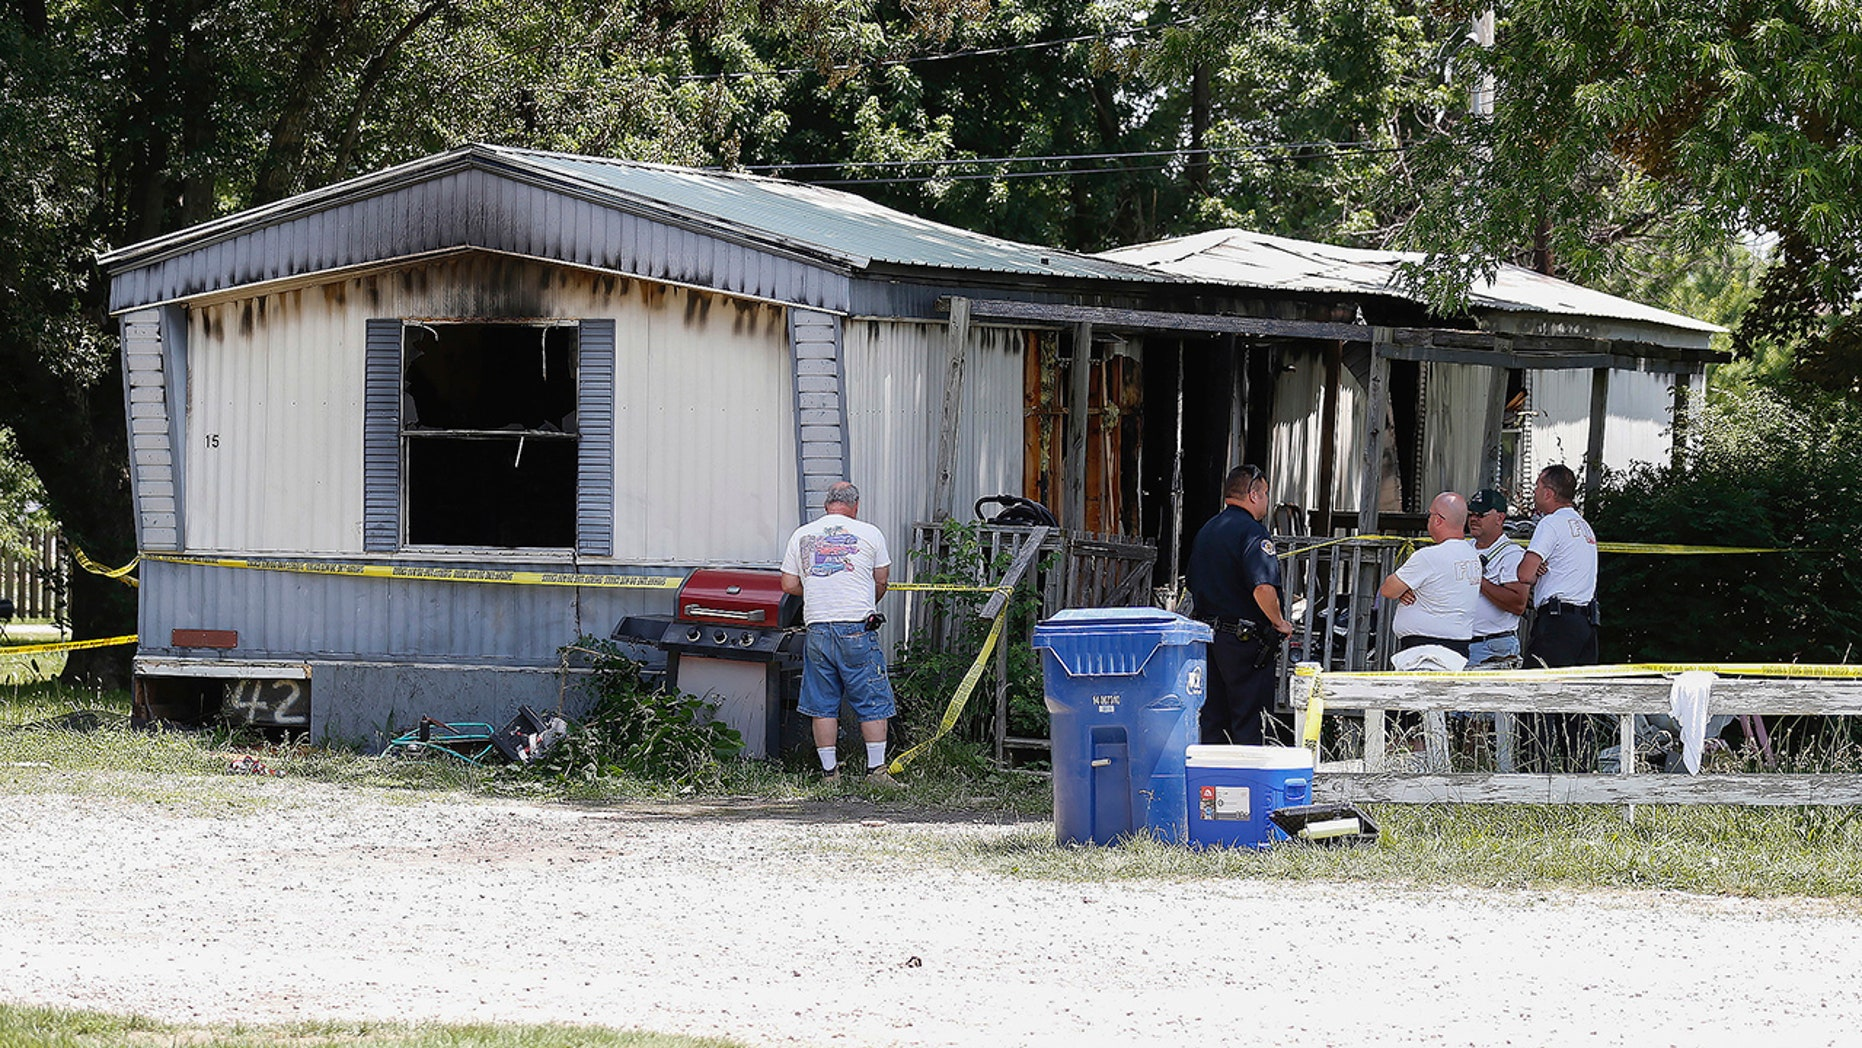 Investigators look over the remains of a deadly fire, in Lebanon, Mo., June 6, 2018.